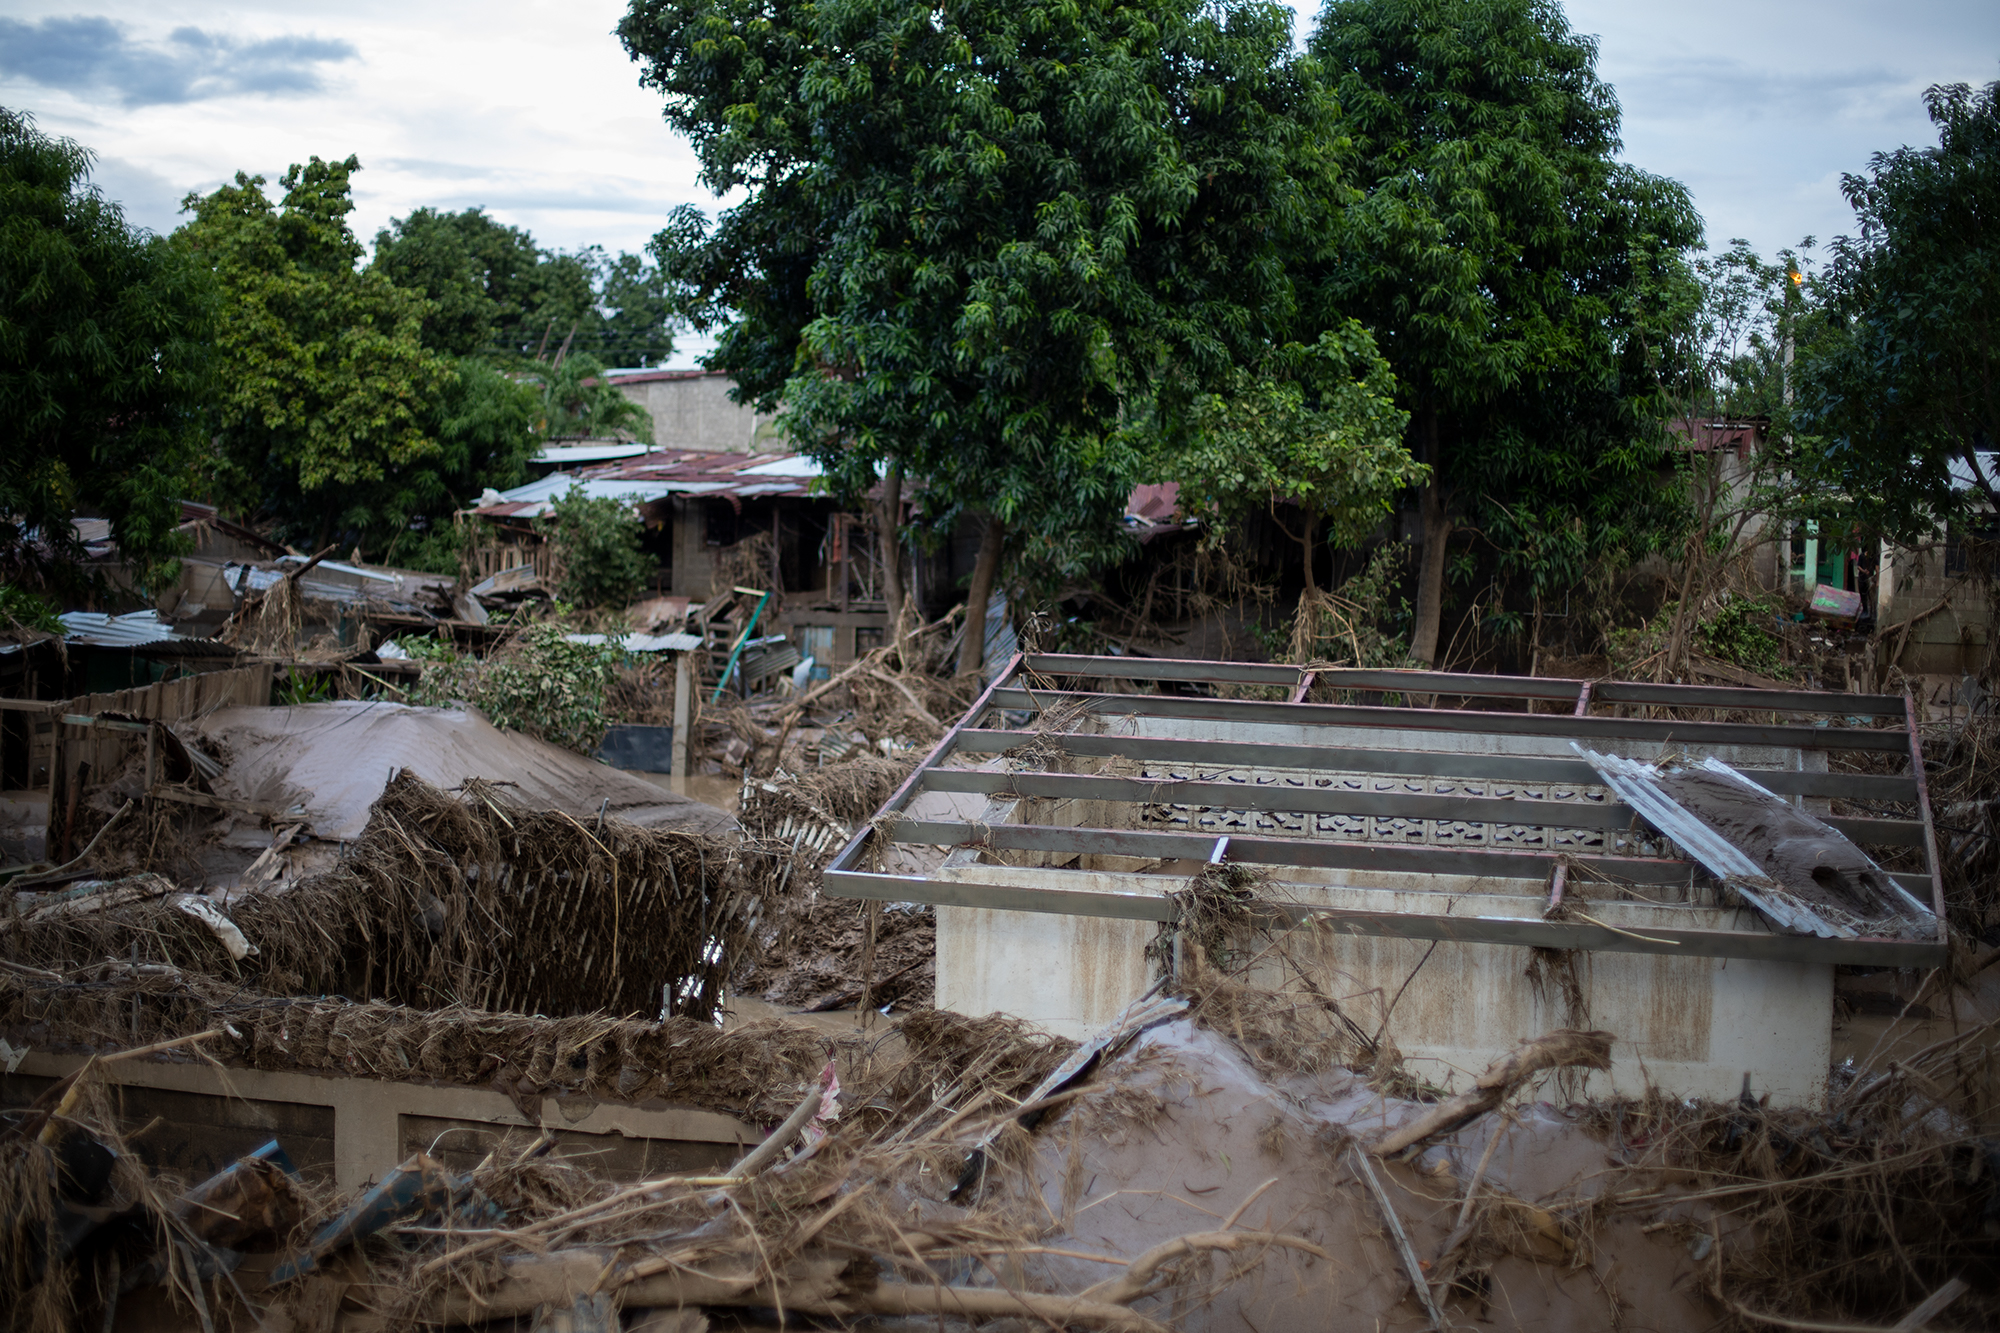 Tropical storm Eta provoked flooding in the sector of Chamelecon, but tropical storm Iota brought even greater devastation, burying houses and destroying more in its path. San Pedro Sula, Nov. 20, 2020. Photo: Martín Cálix.